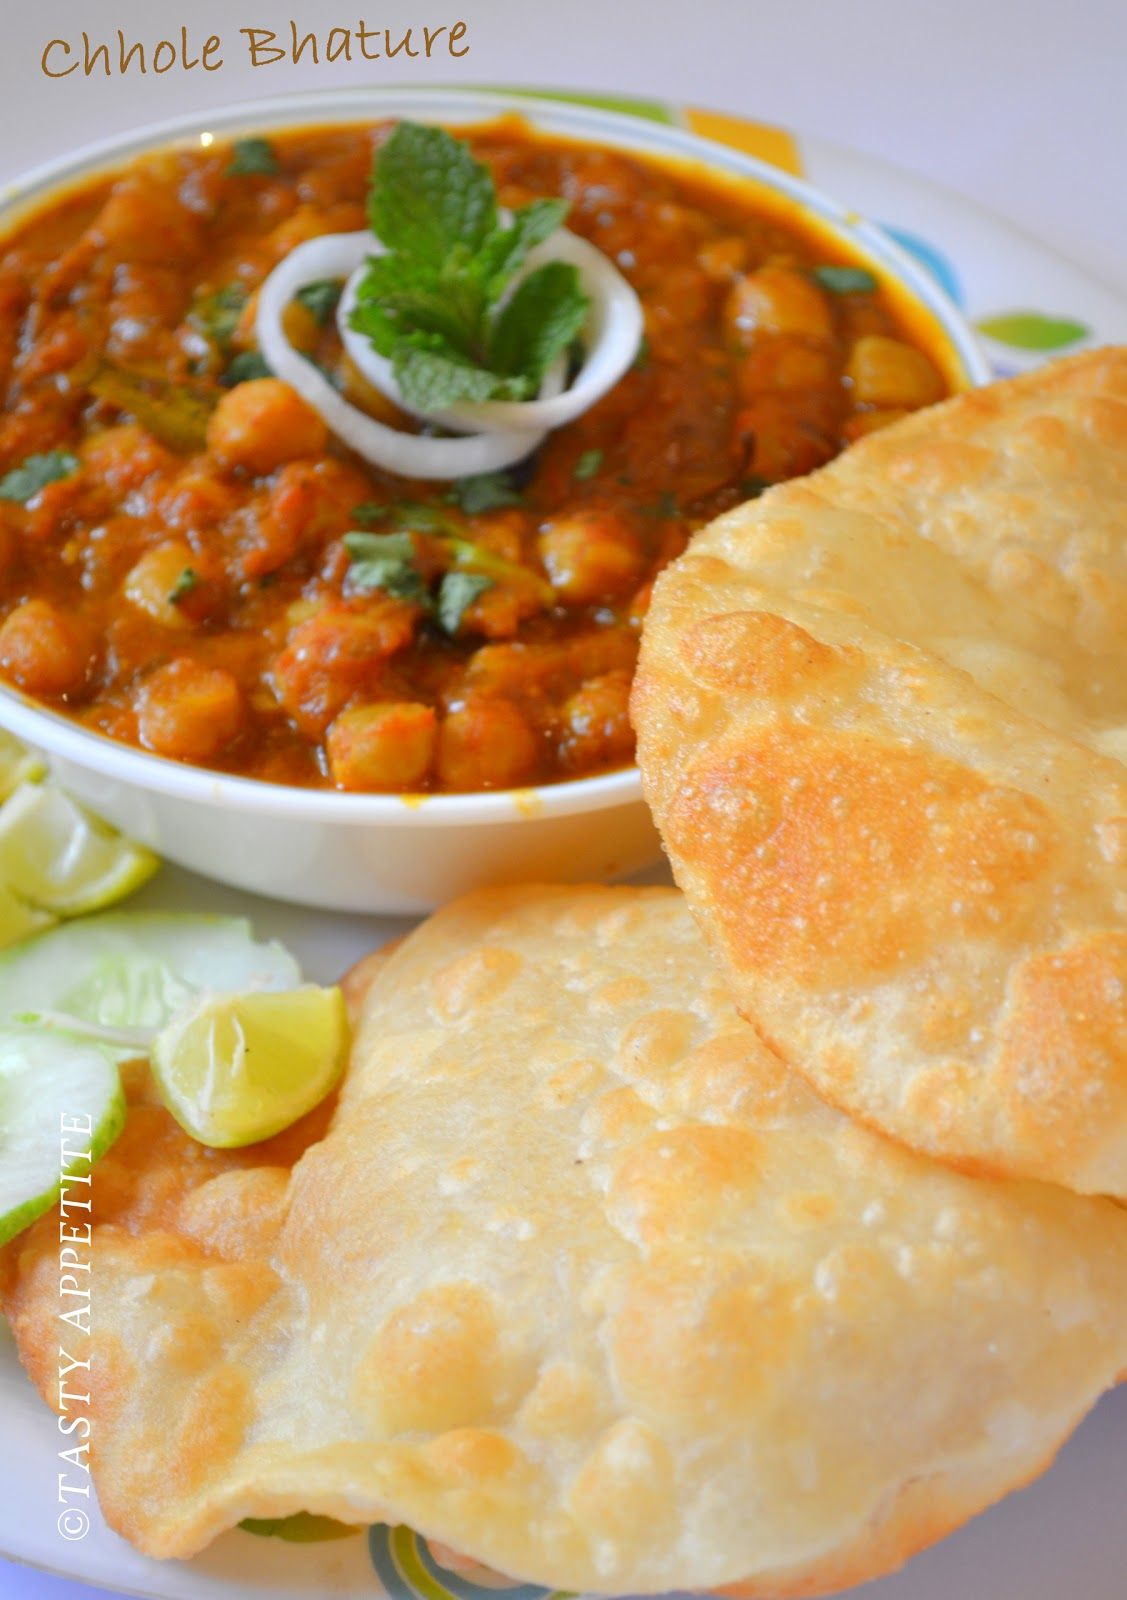 Tasty appetite chole bhature punjabi bhature recipe step by chole bhature chole bhature is an extremely popular punjabi dish that is consumed all over north india and makes a complete breakfast or lunch the recipe forumfinder Gallery